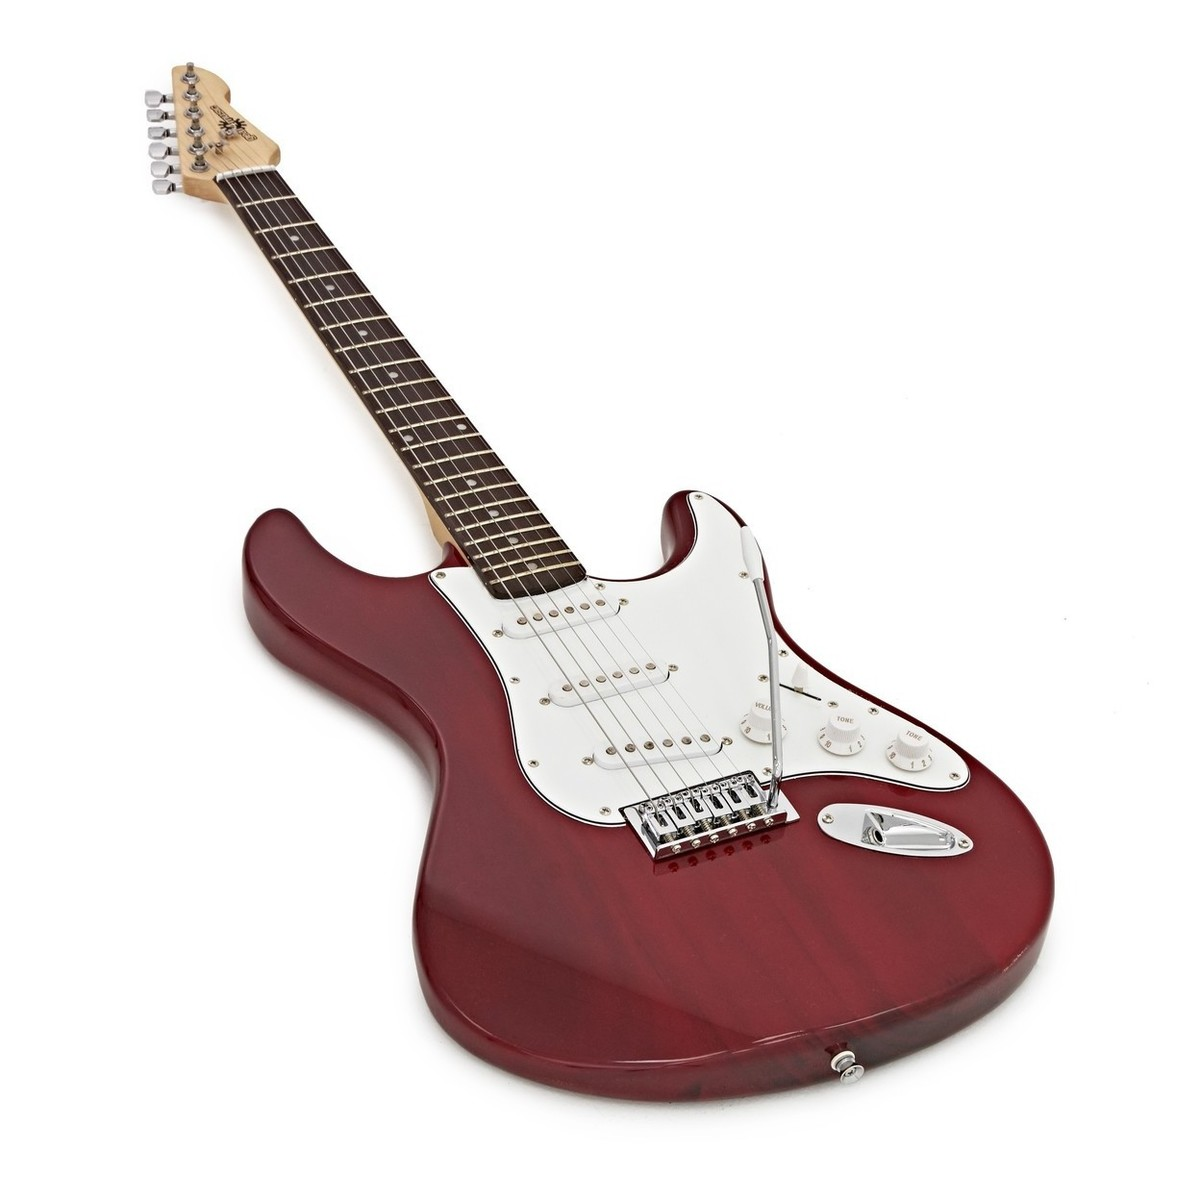 la electric guitar by gear4music red b stock at gear4music. Black Bedroom Furniture Sets. Home Design Ideas